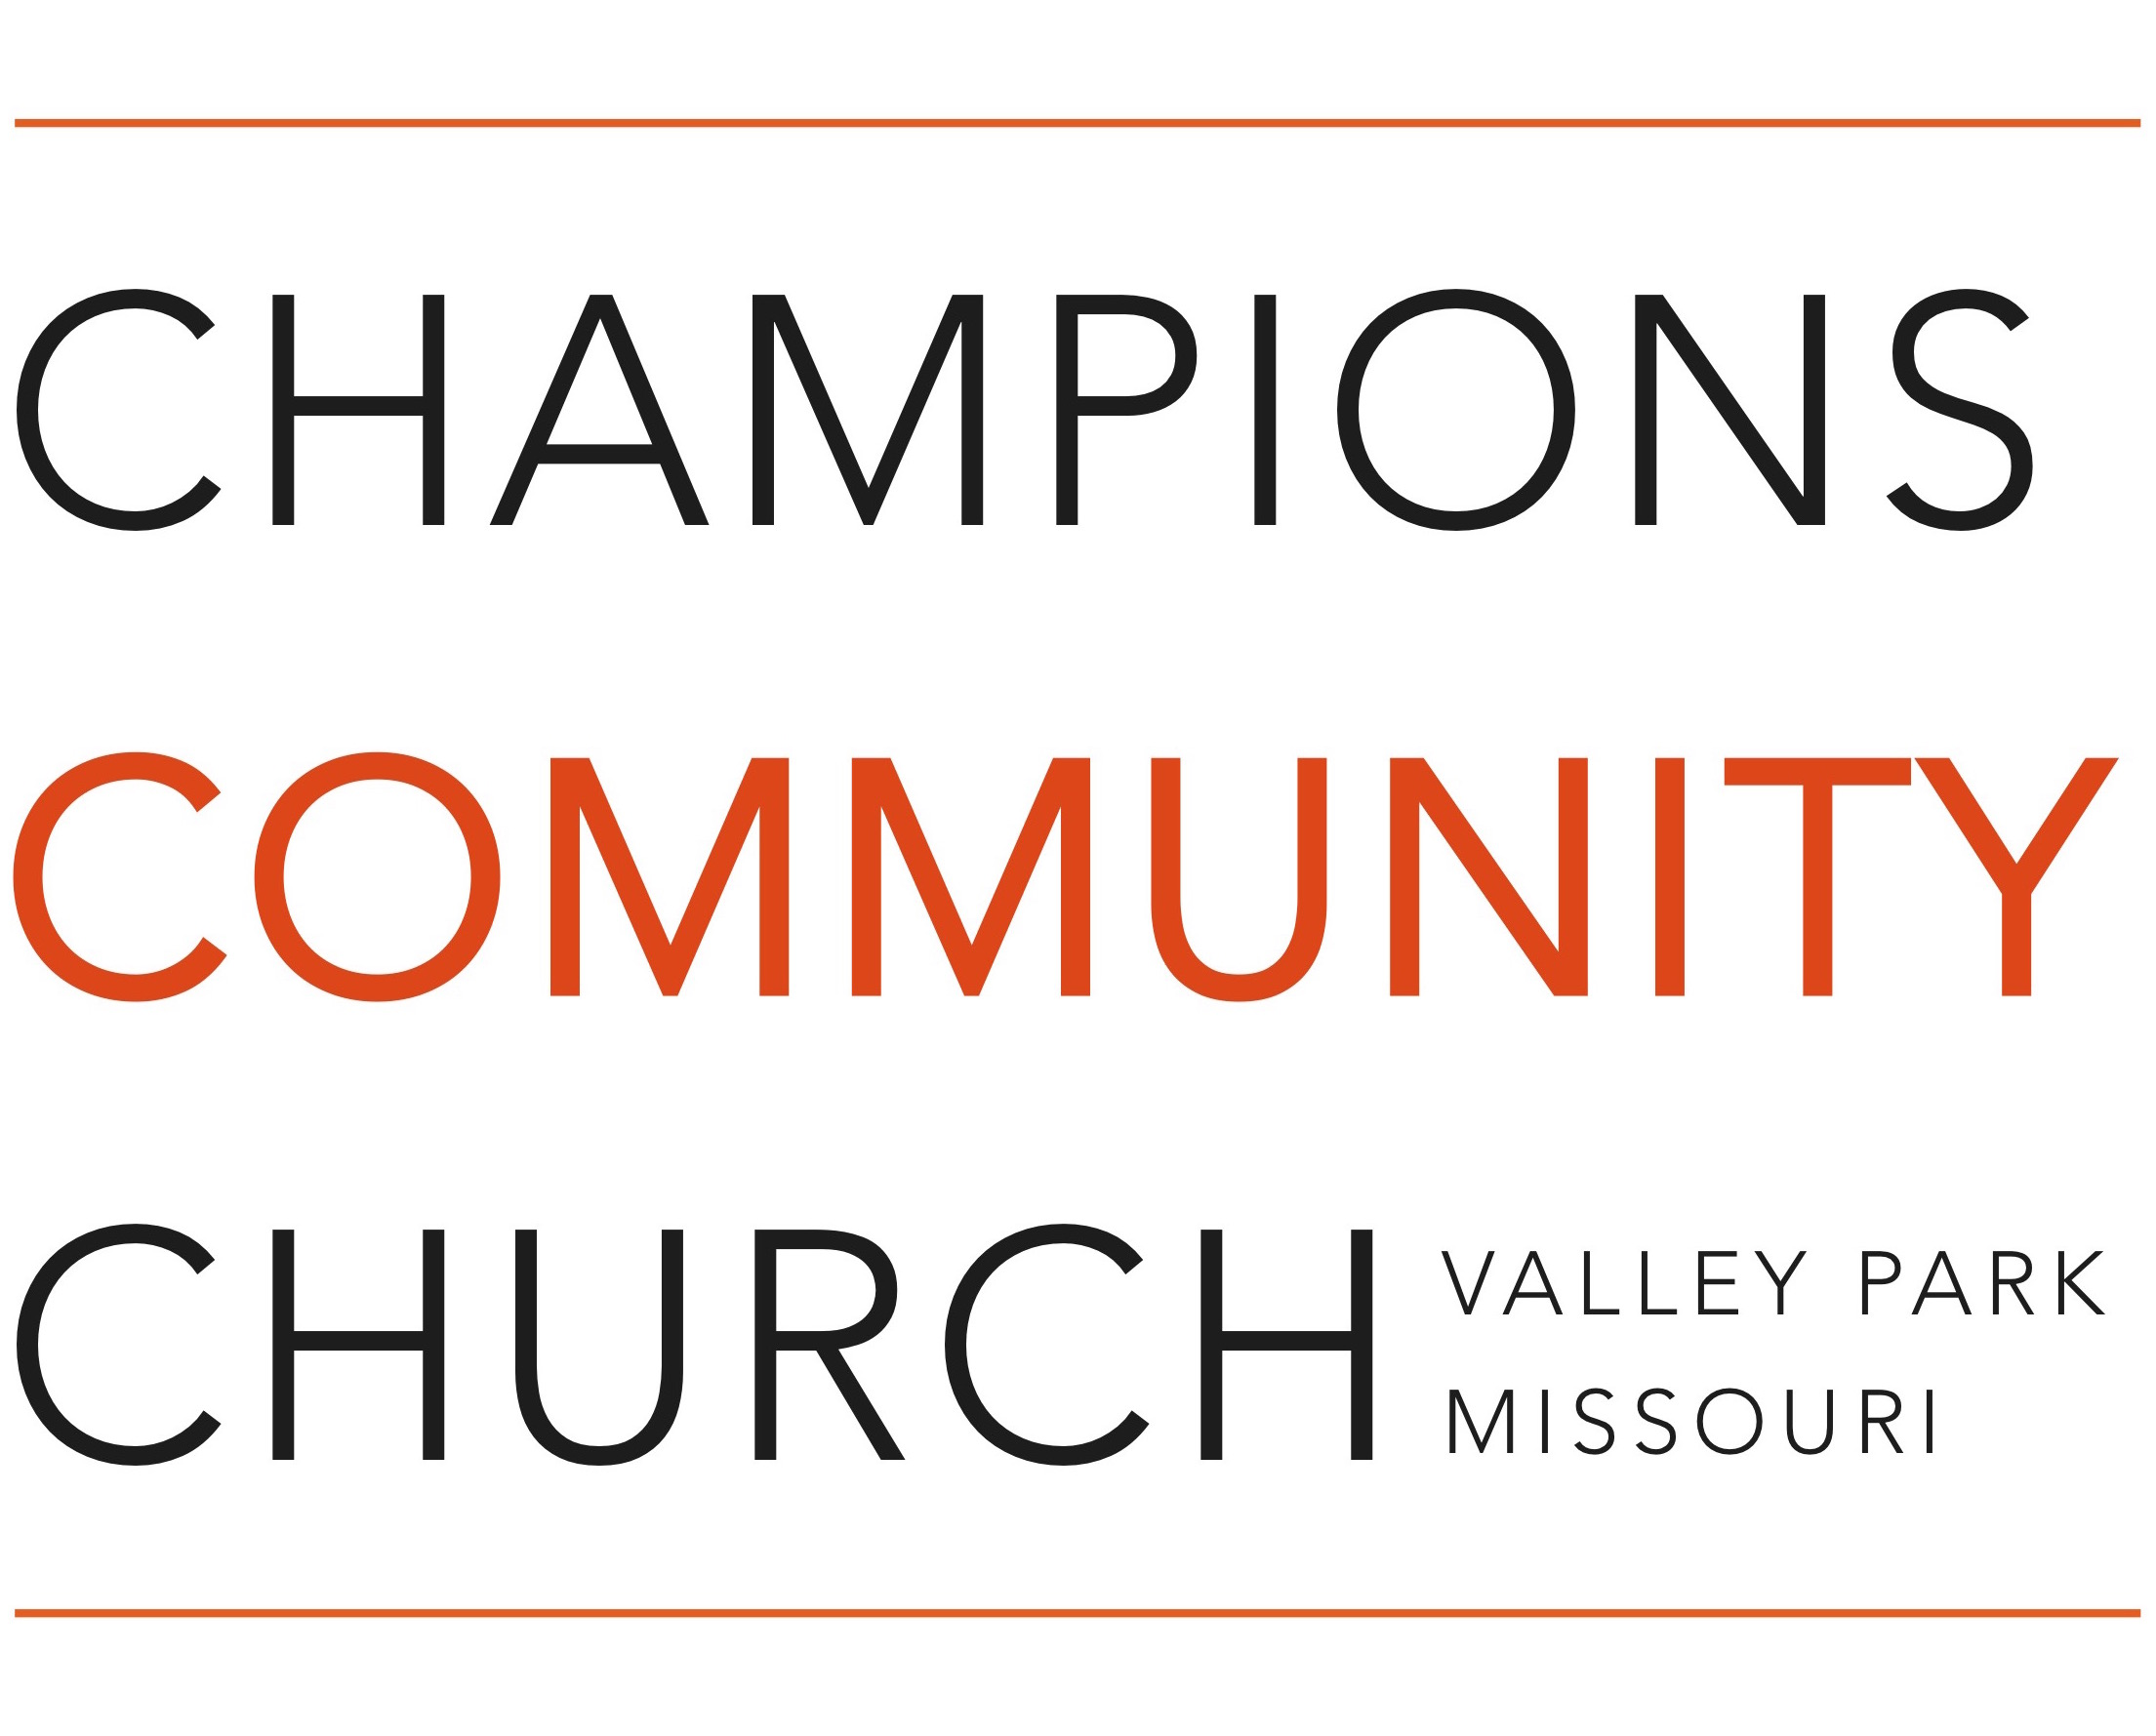 Champions Community Church: Valley Park